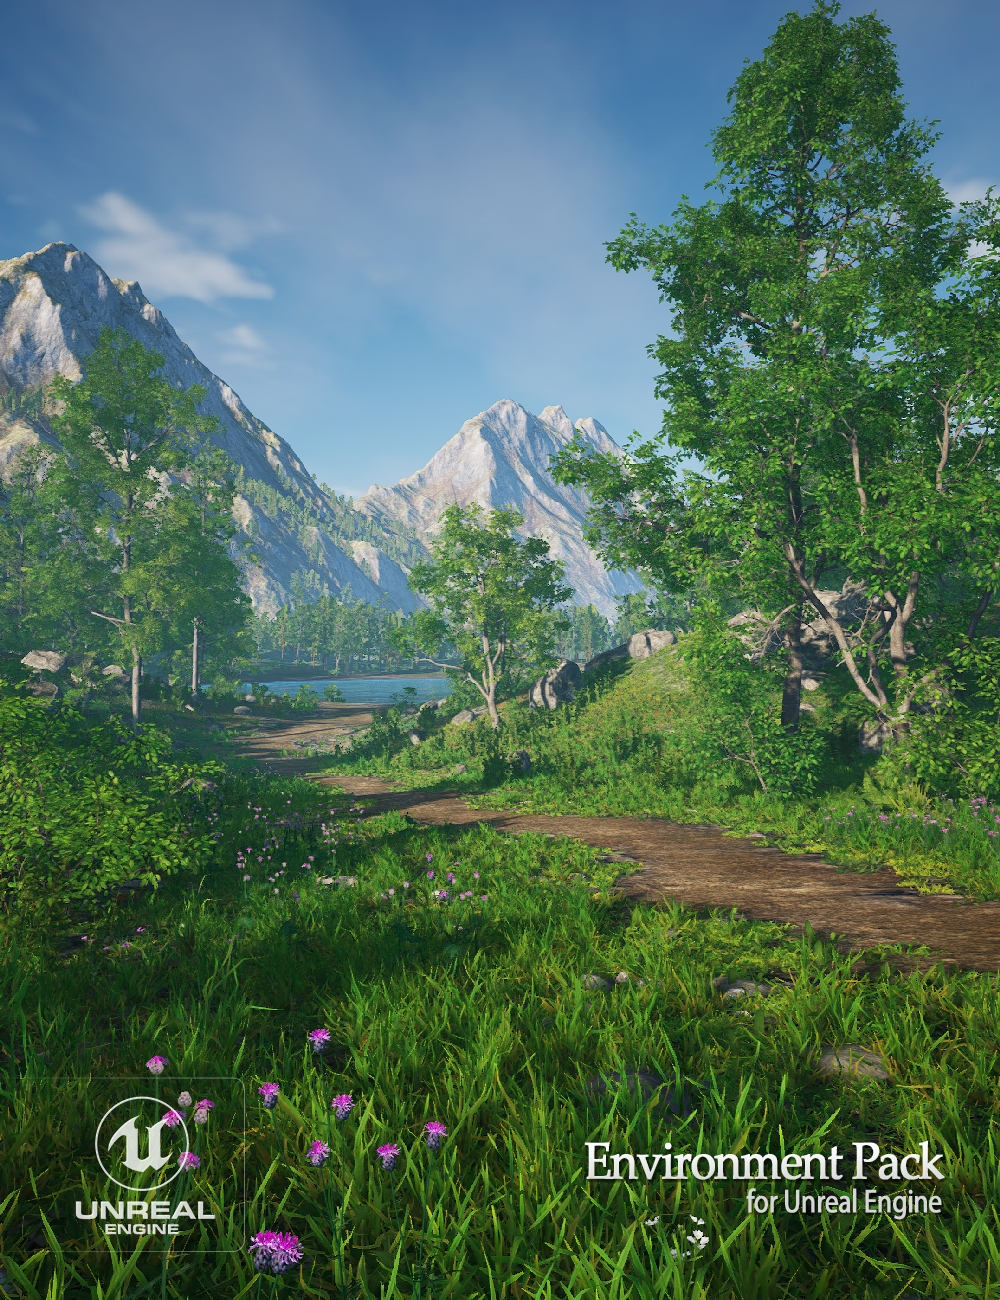 Environment Pack for Unreal Engine by: Andrey Pestryakov, 3D Models by Daz 3D